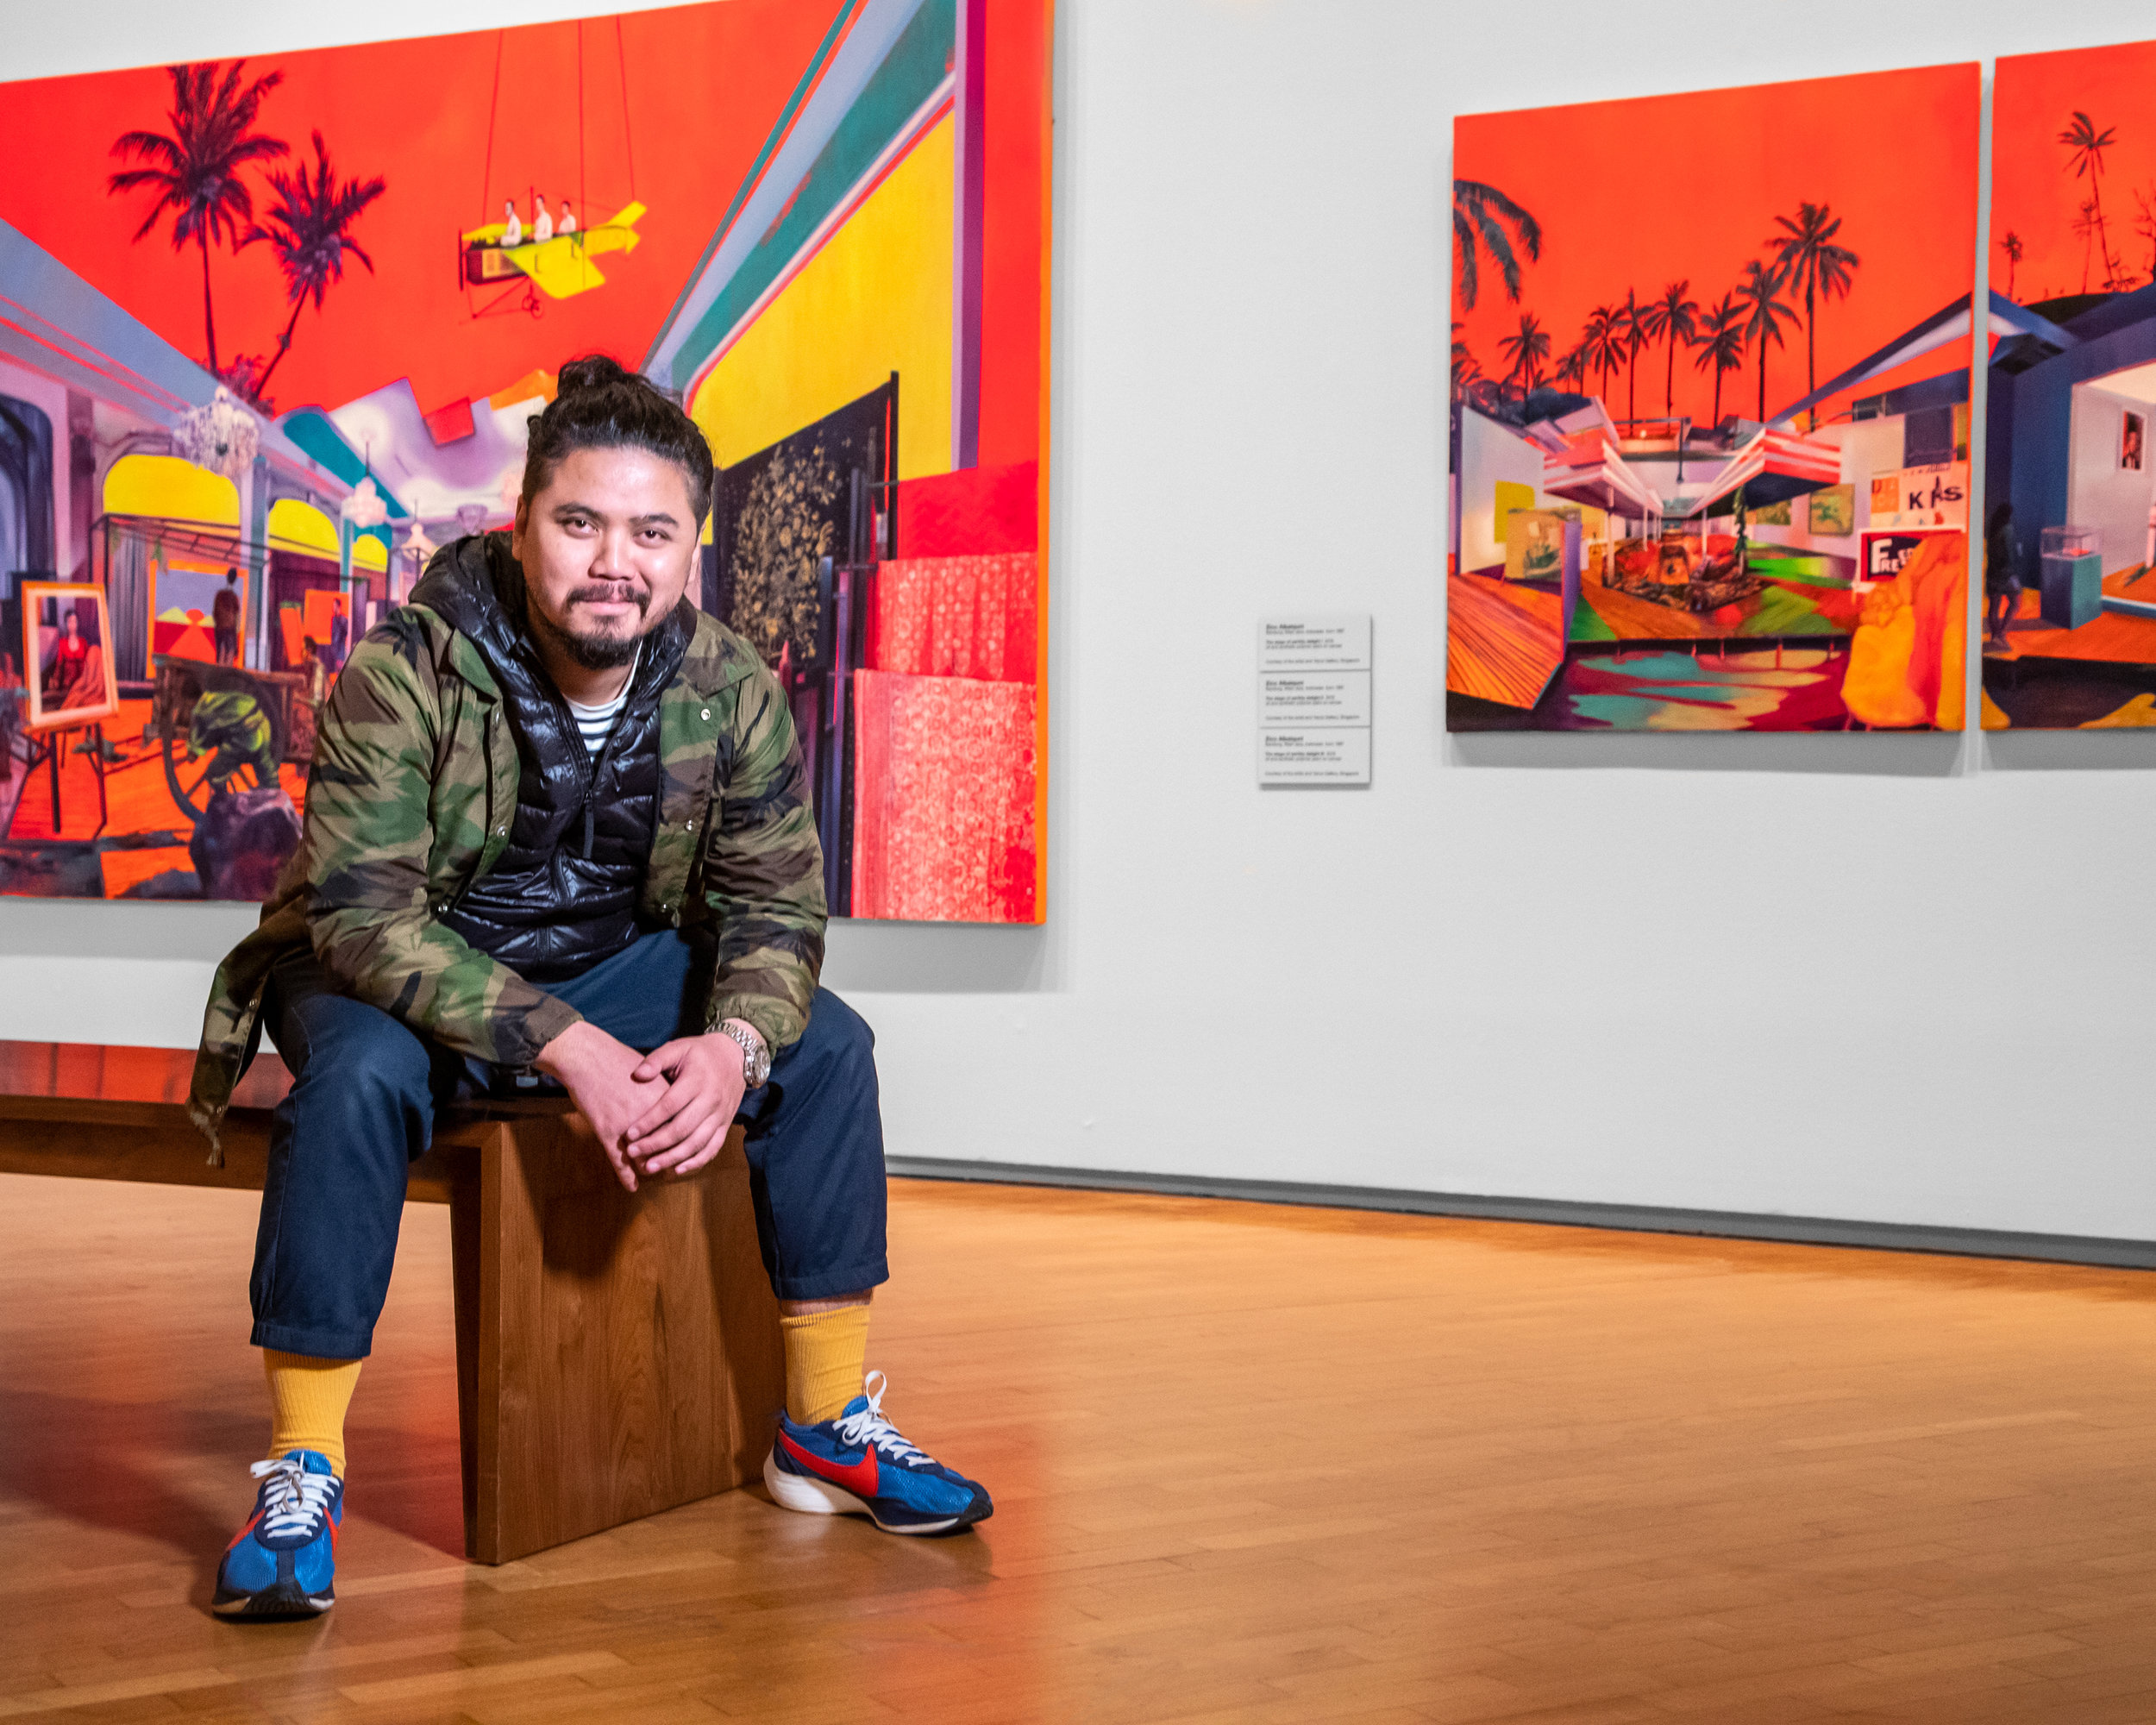 Artist  Zico Albaiquni  with his works  Ladies and gentlemen! Kami present, Ibu Pertiwi!  (2018) and  The stage of earthly delight I  (2018)